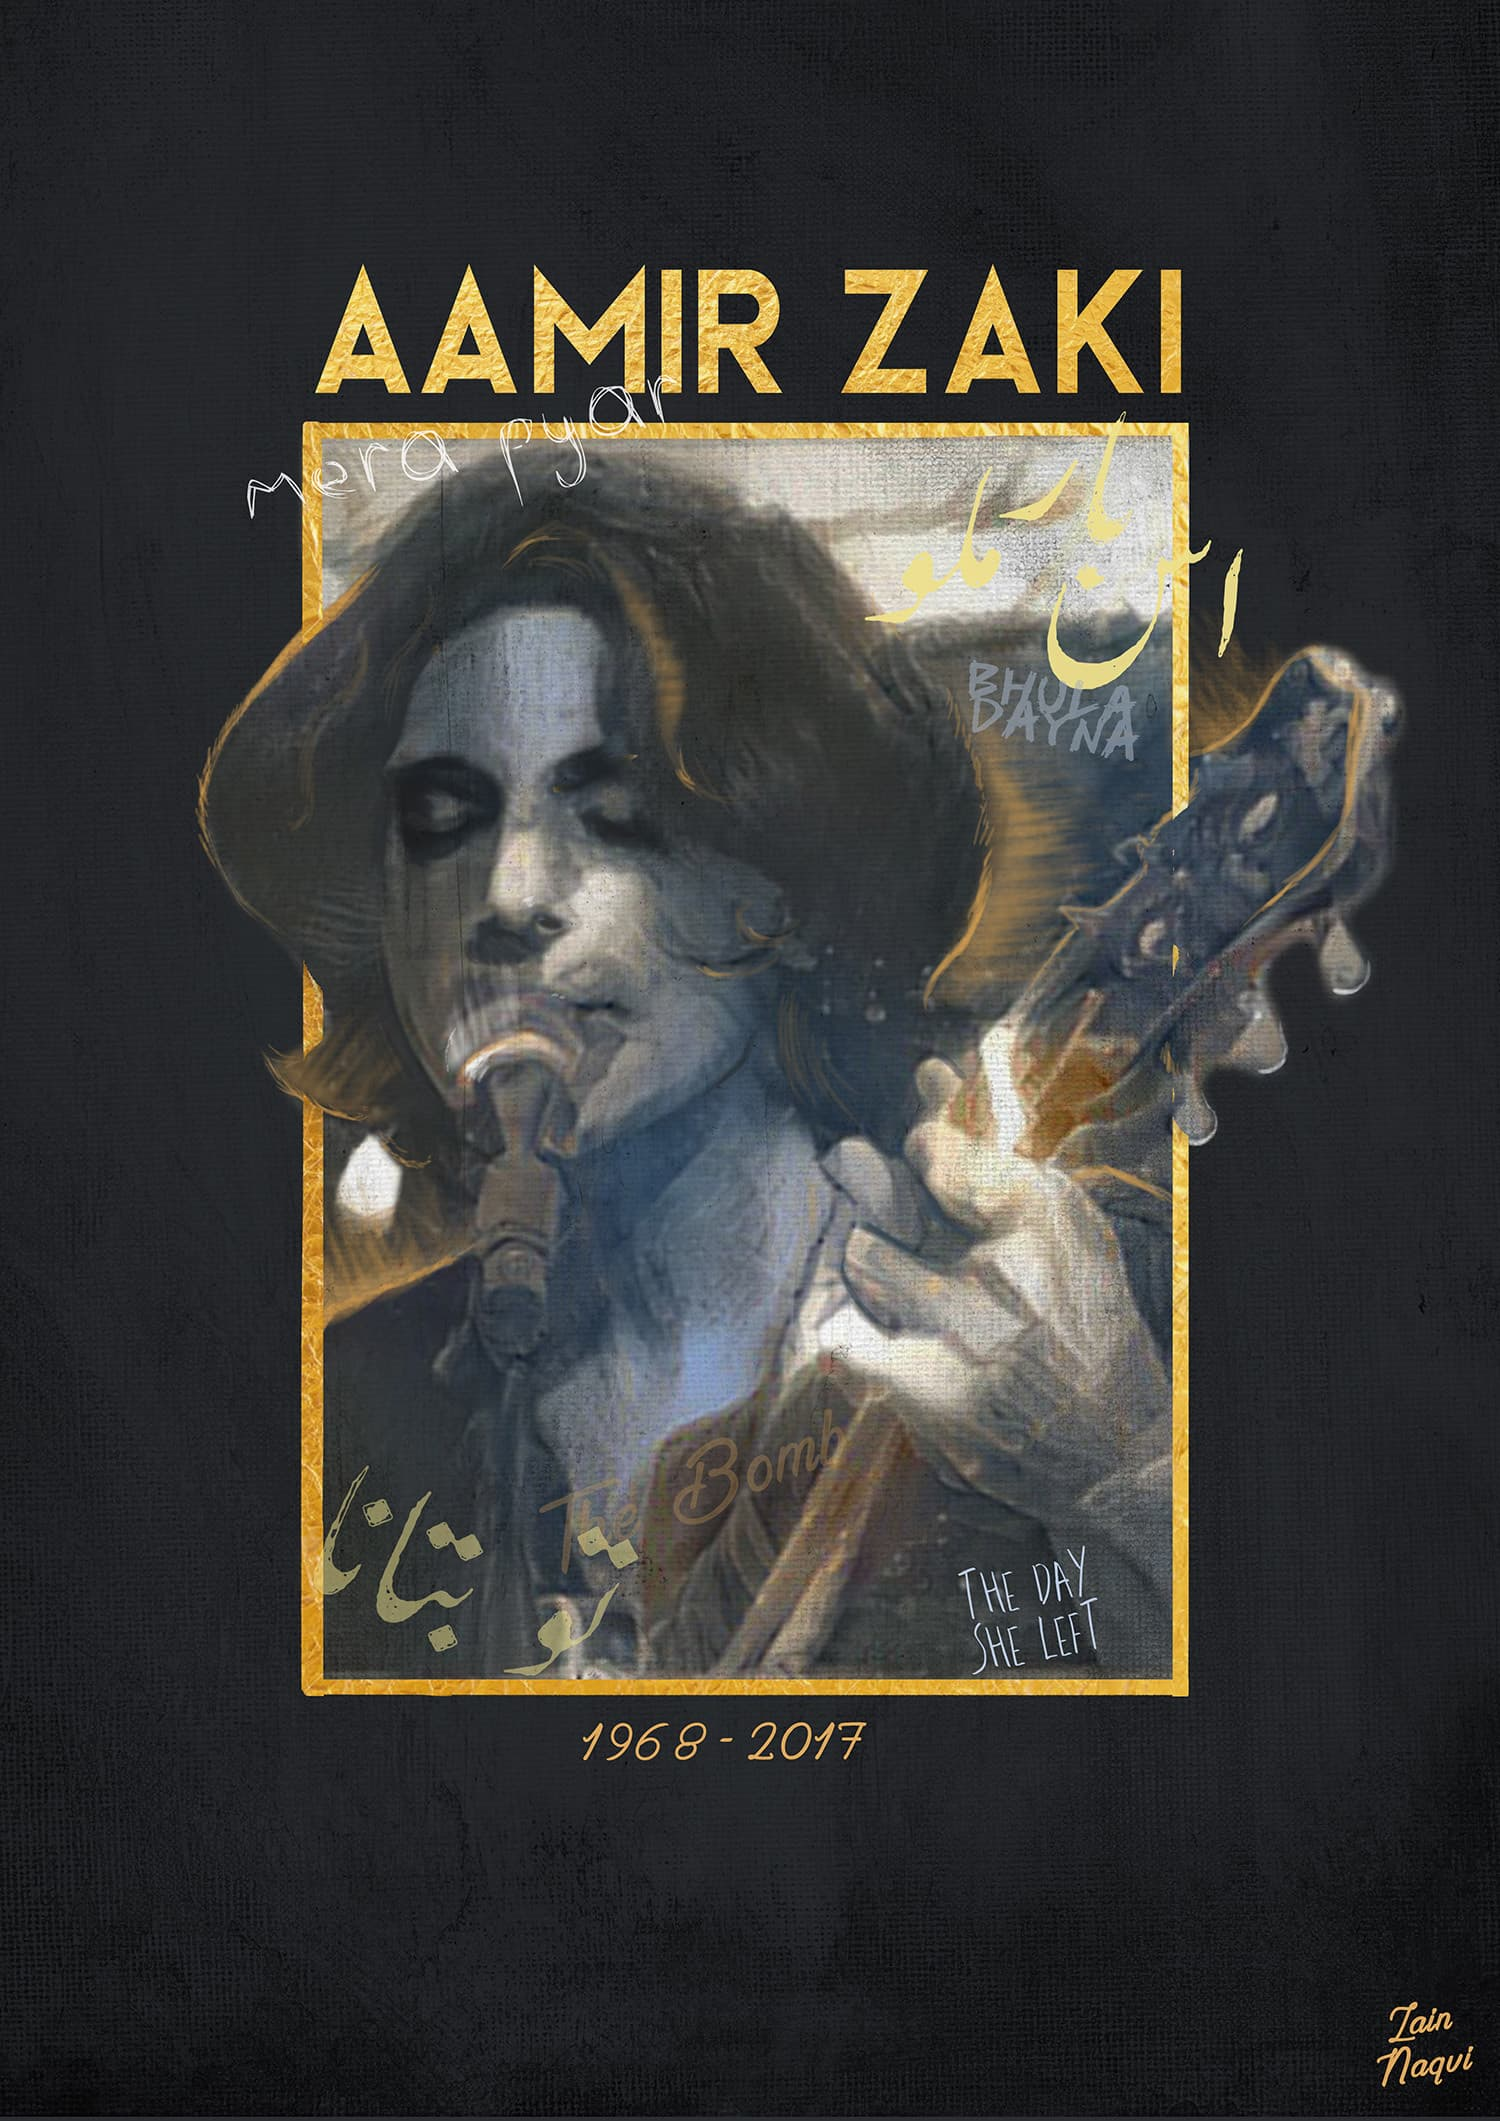 Artwork that I did to honour the maestro.